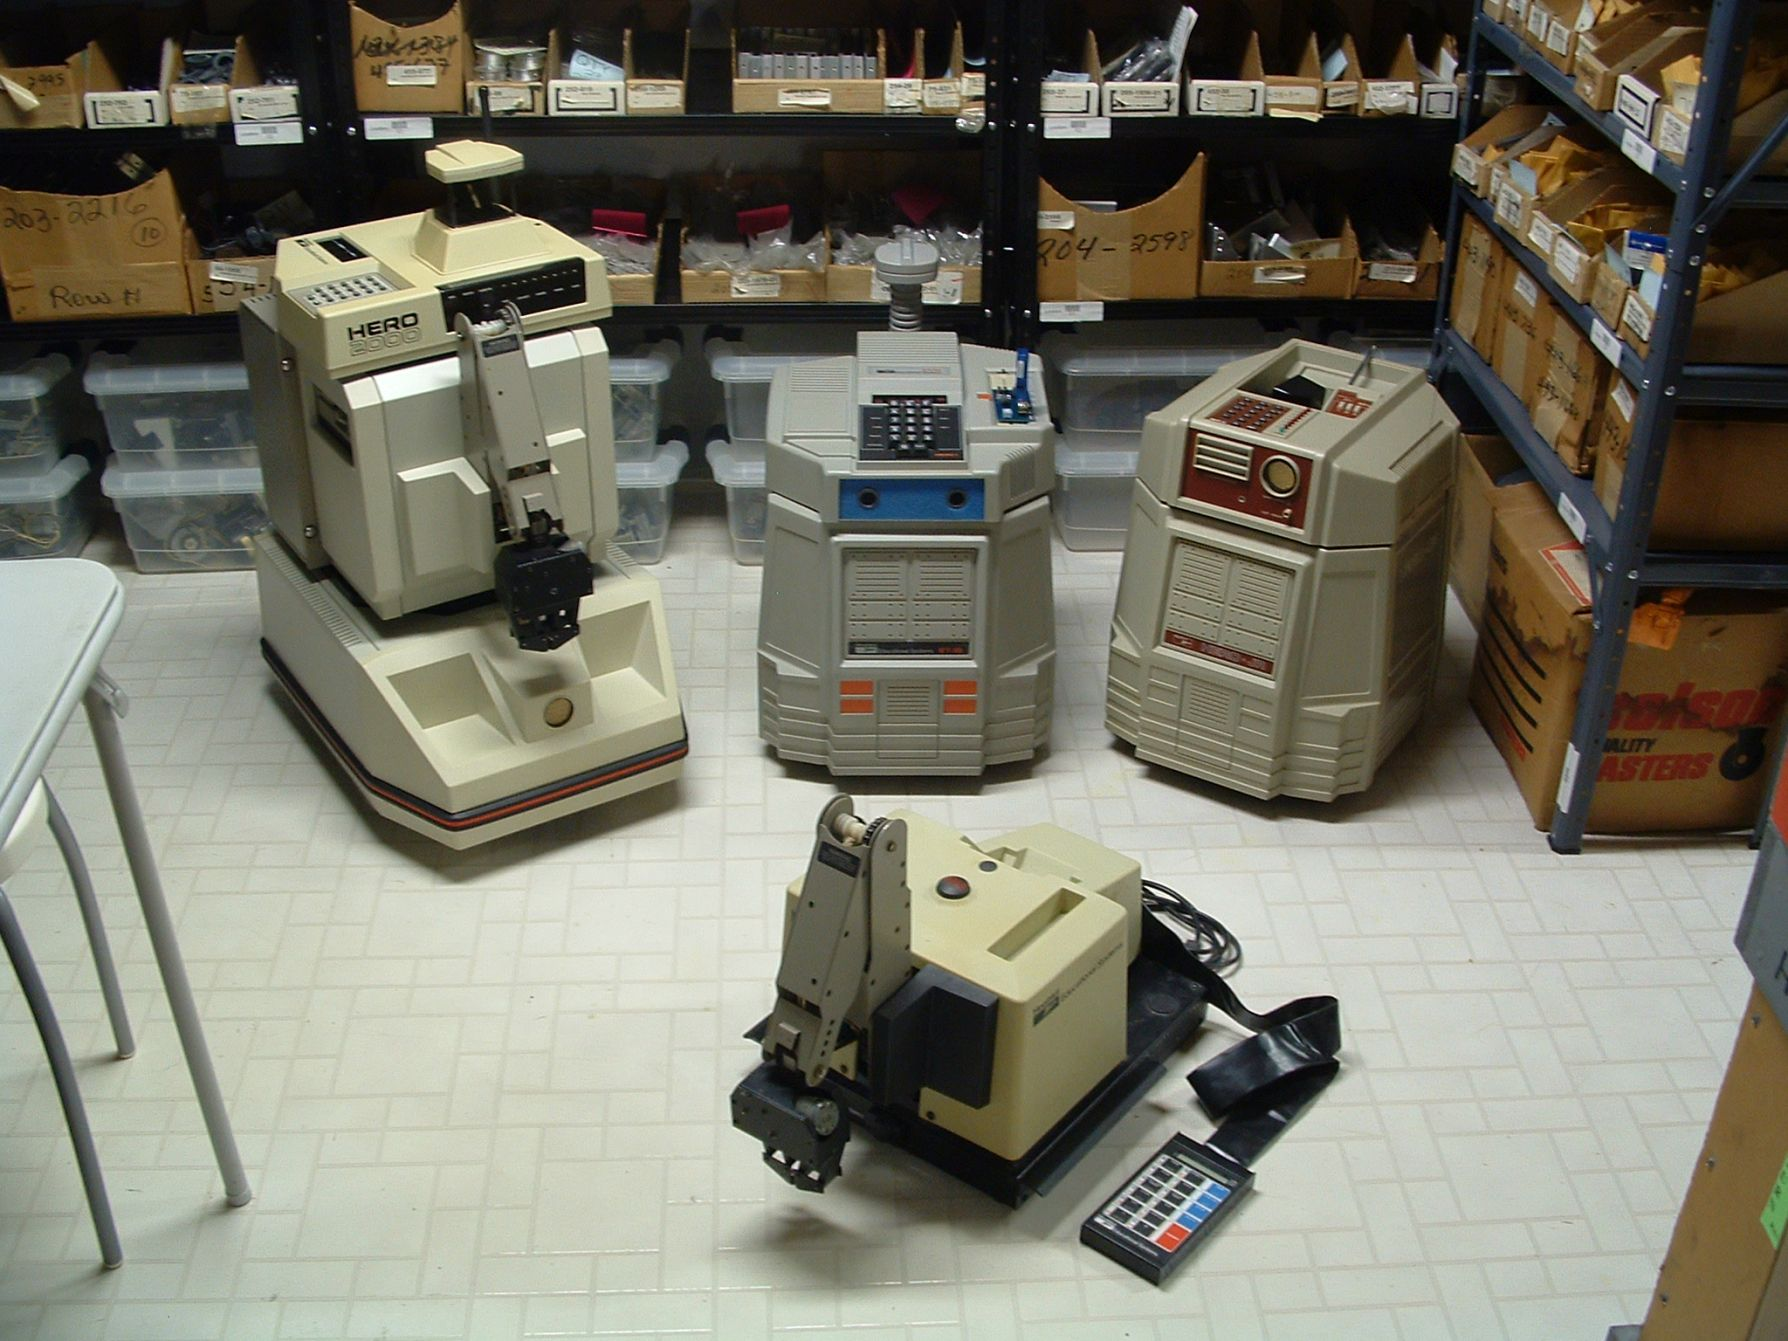 HERO 2000, HERO 1, and HERO Jr robots